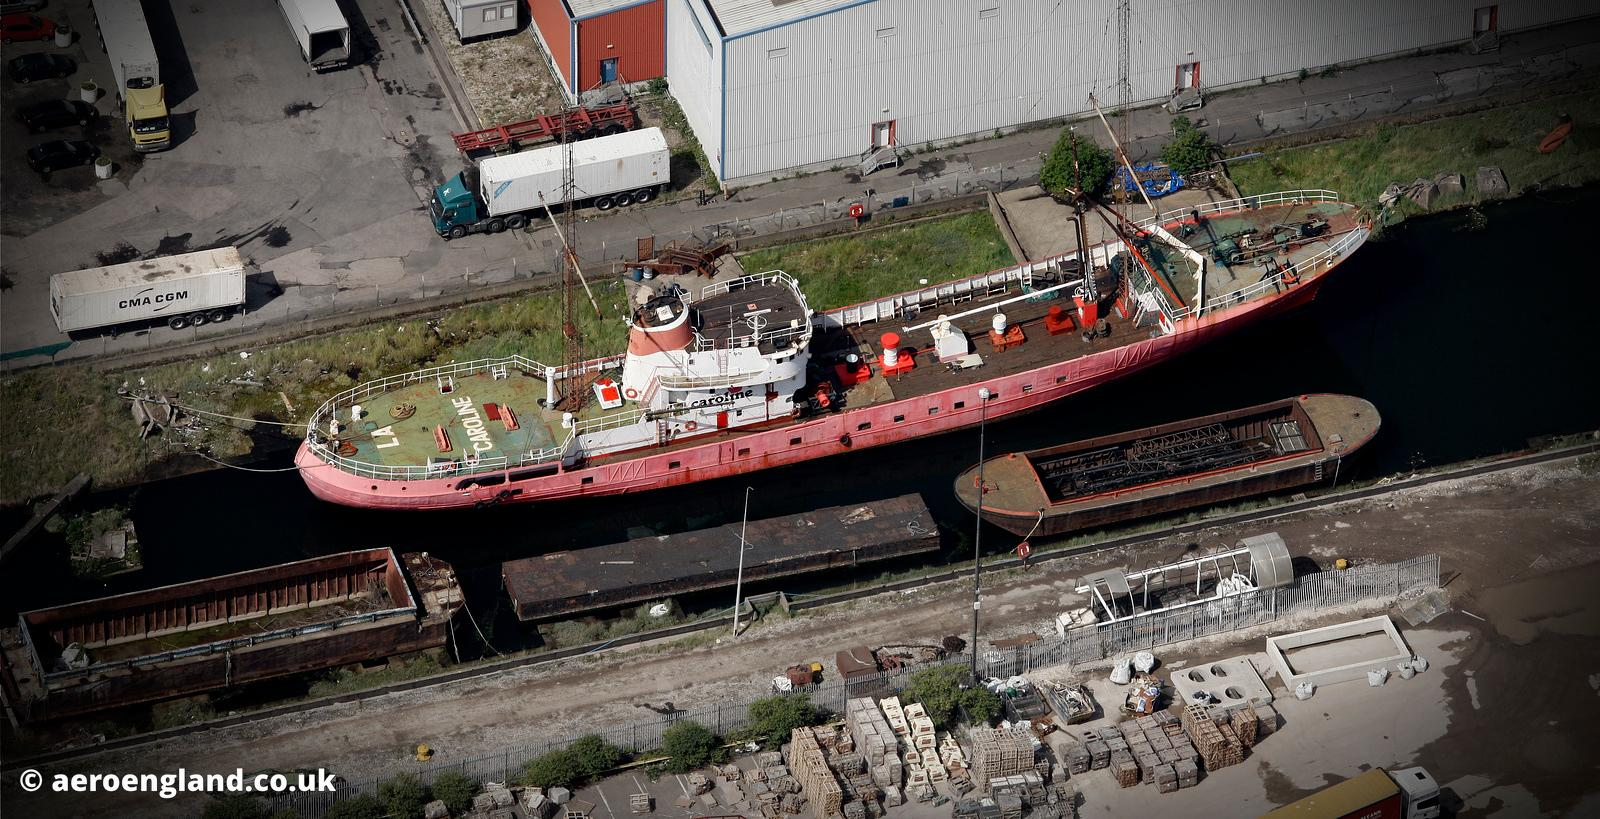 aerial photograph of the Ross Revenge, broadcasting ship used by Radio Caroline , taken in Tilbury Docks England